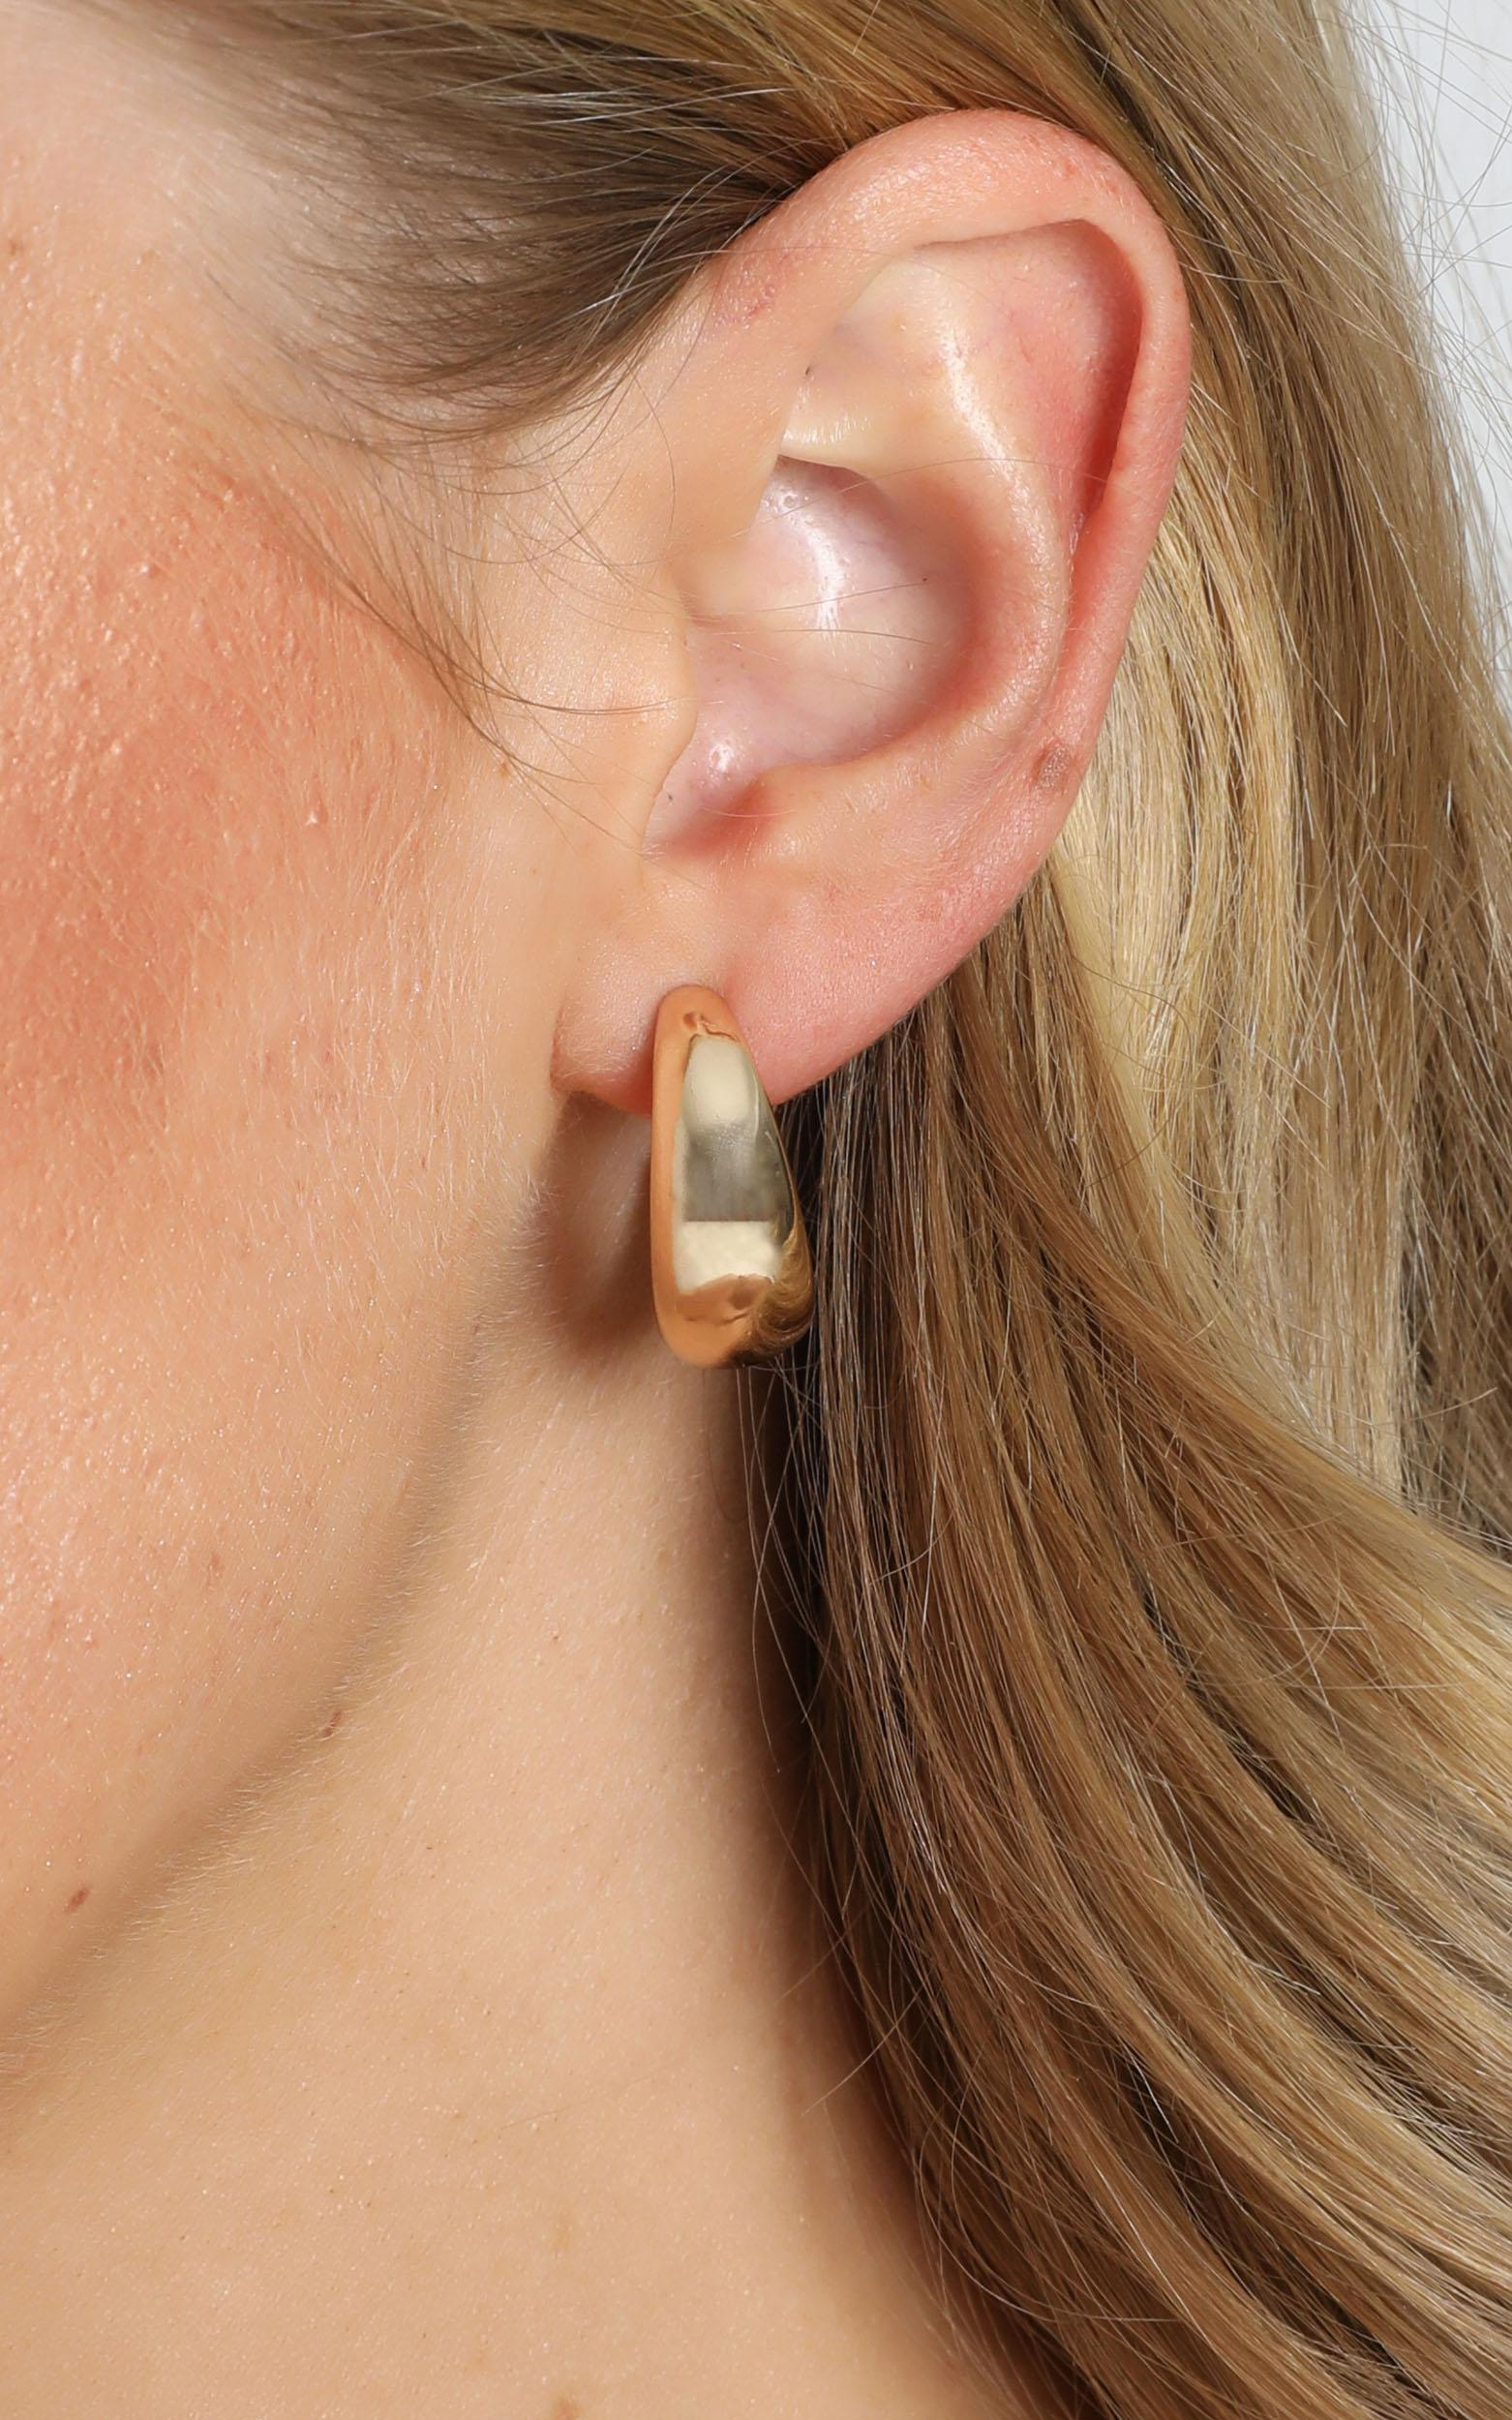 JT Luxe - Artisan Hoop Earrings in Gold, , hi-res image number null